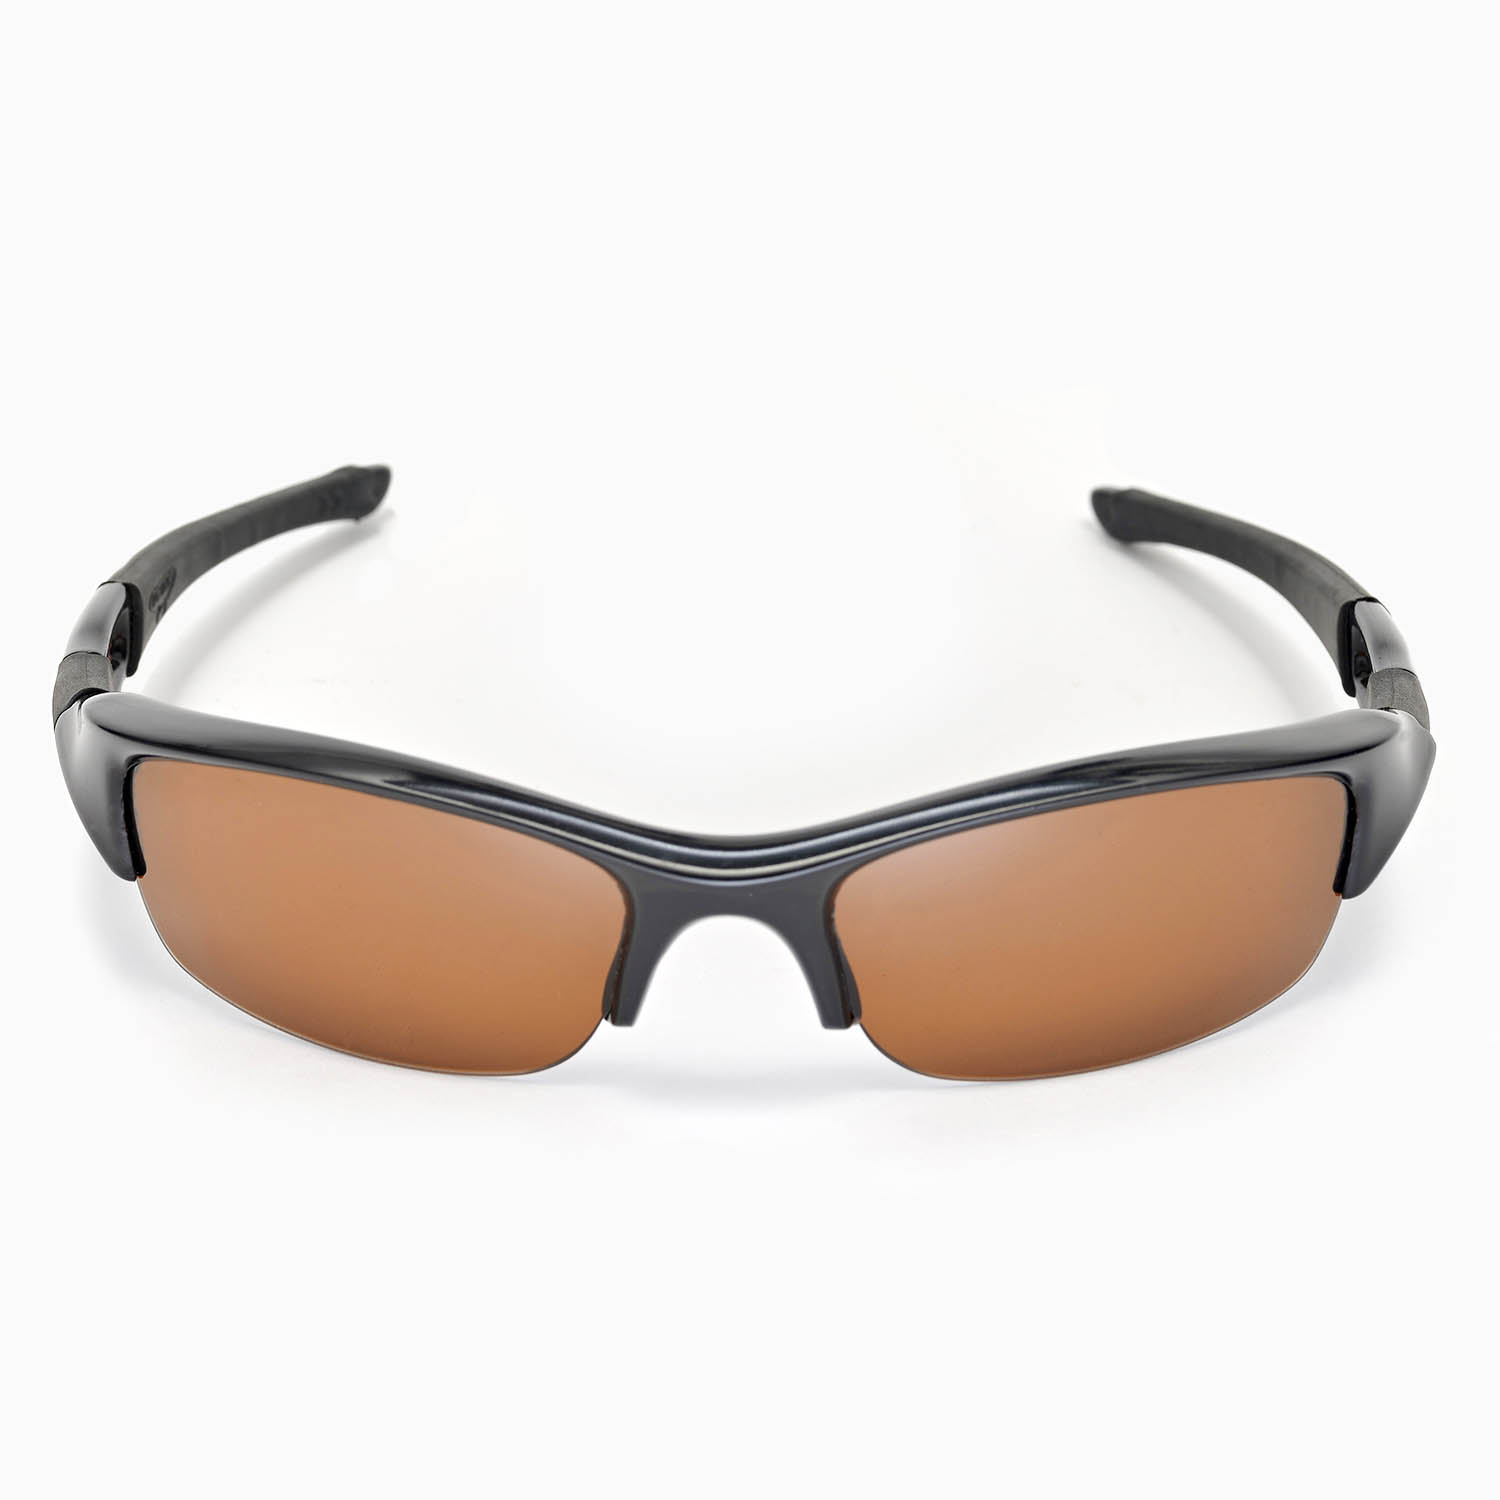 difference between oakley half jacket and flak jacket s1nq  Walleva Polarized Brown Lenses for Oakley Flak Jacket x1; Walleva  Microfiber Lens Cleaning Cloth x1